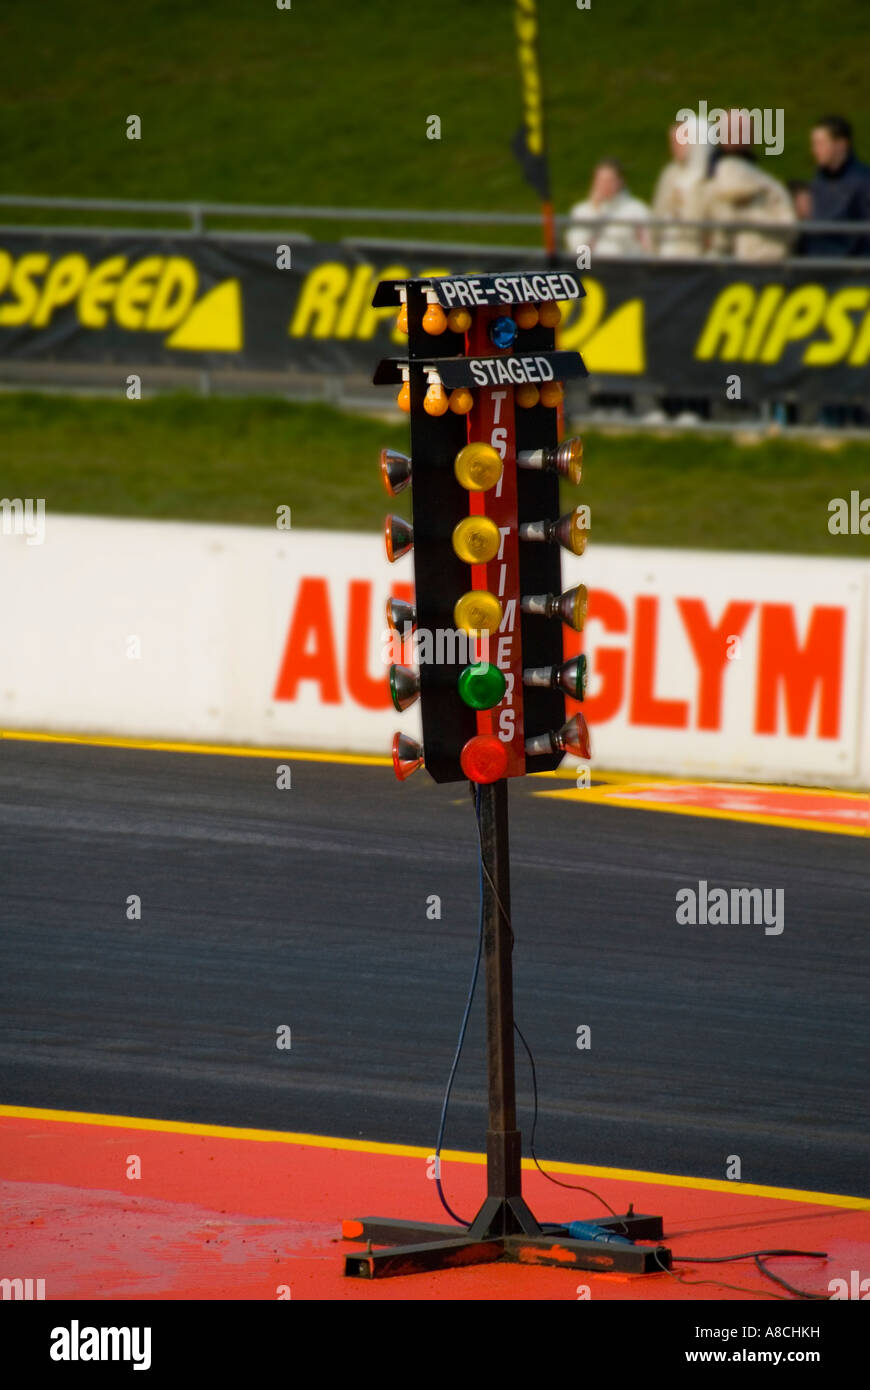 Starting christmas tree lights for drag racing stock photo 12060724 starting christmas tree lights for drag racing aloadofball Image collections